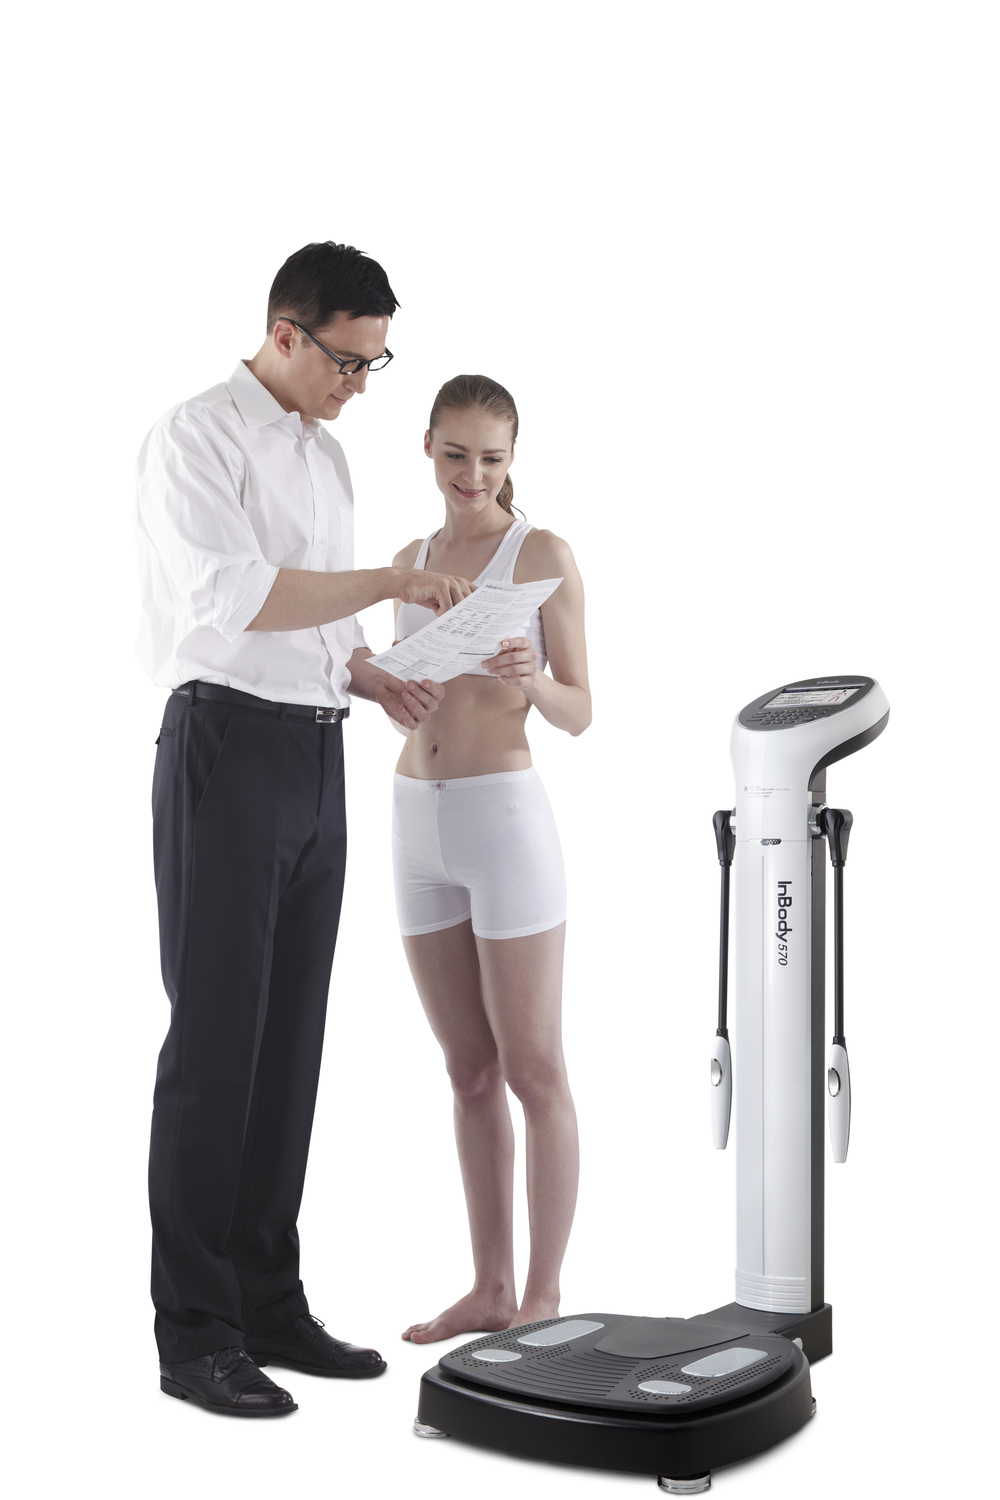 Body Composition Analysis $120.00